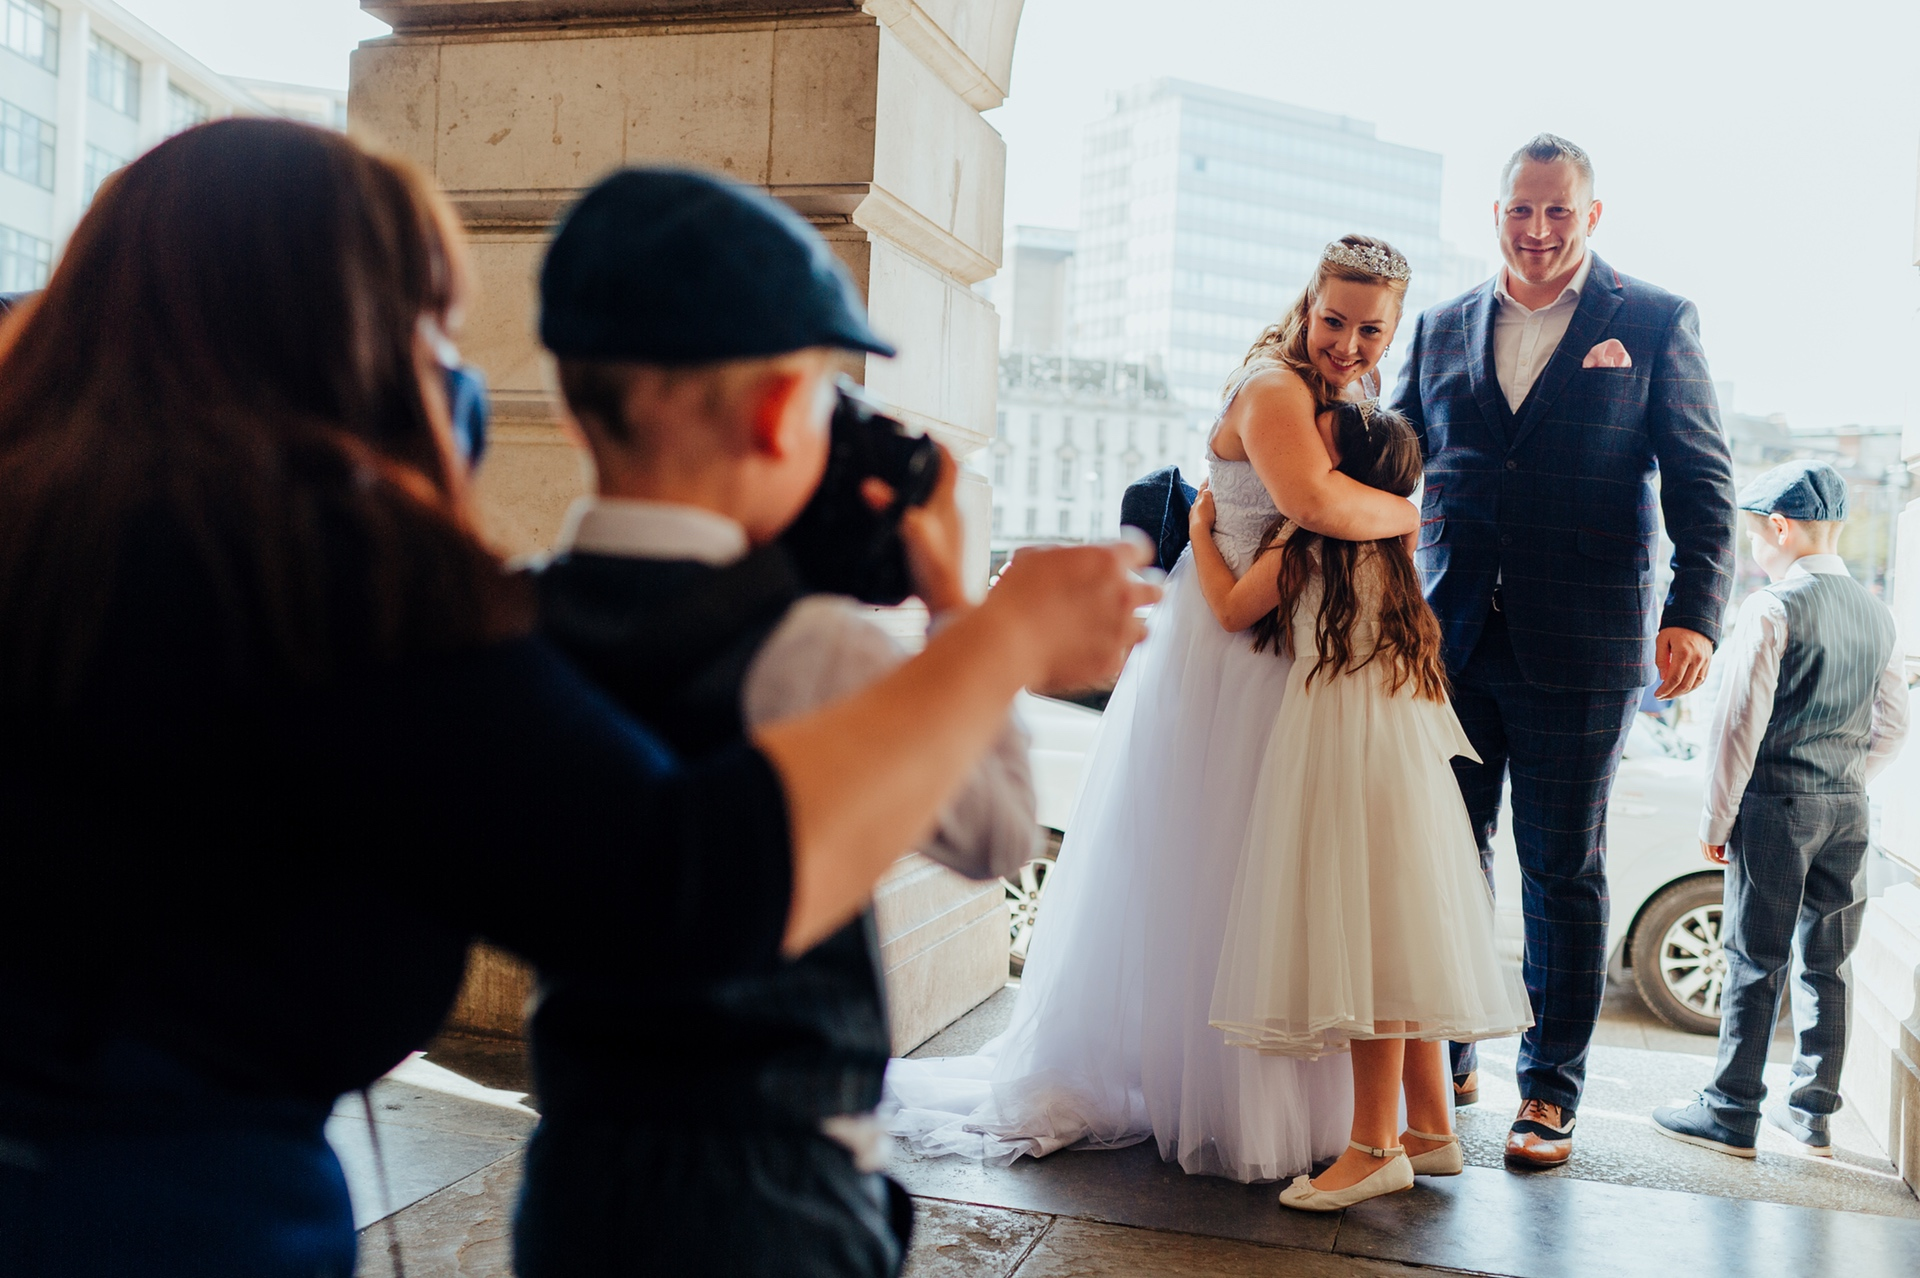 Nottingham Council House, UK Photography | The bride gives her young bridesmaid a hug